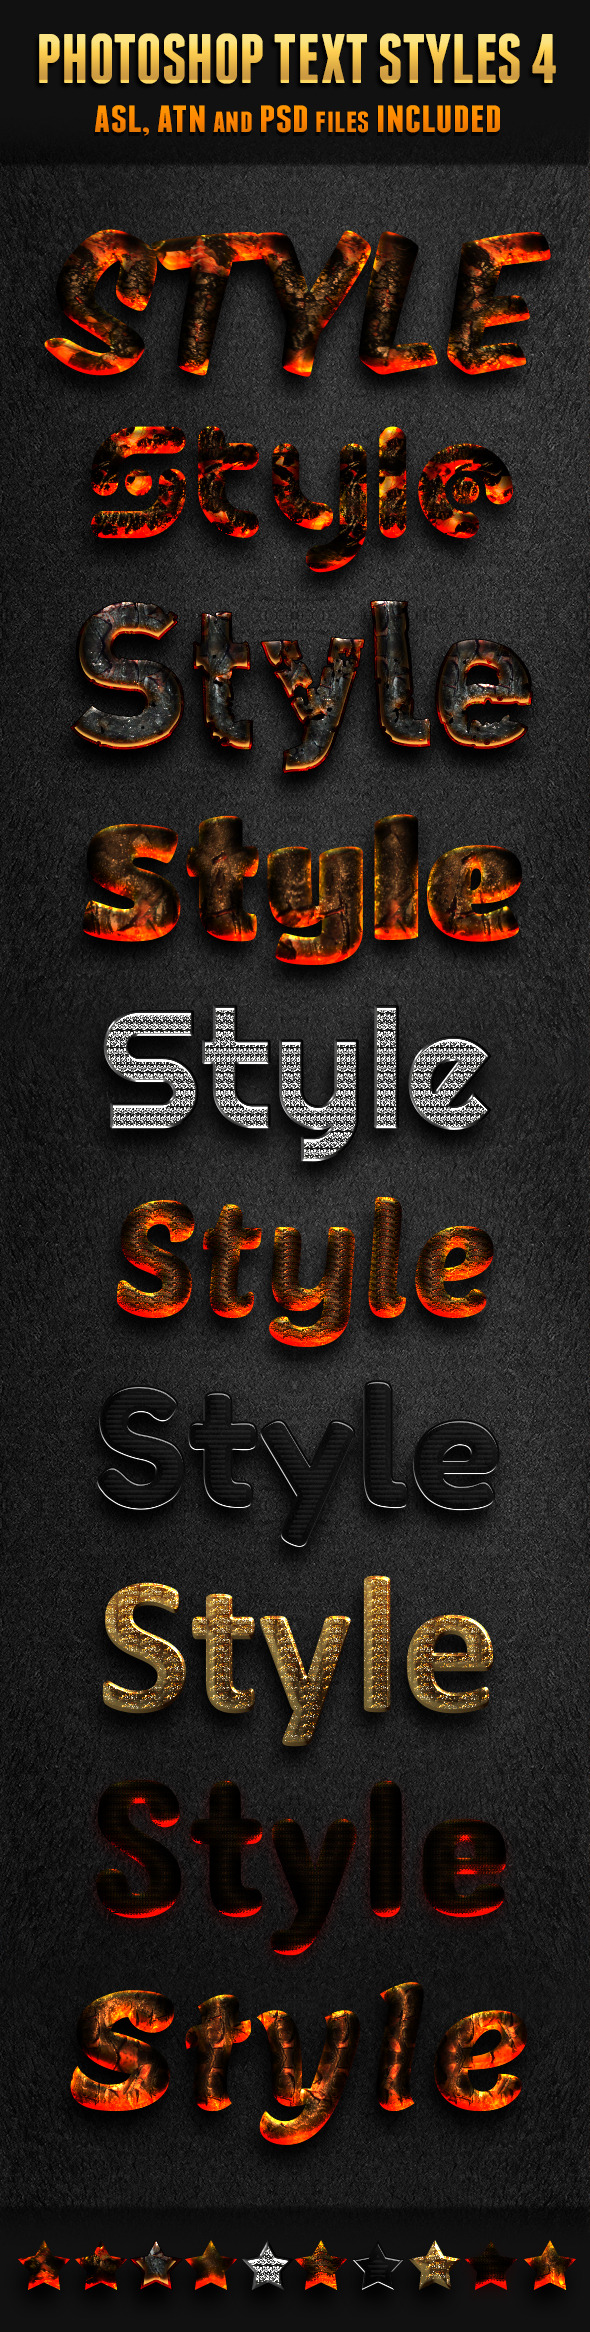 Photoshop Text Styles 4